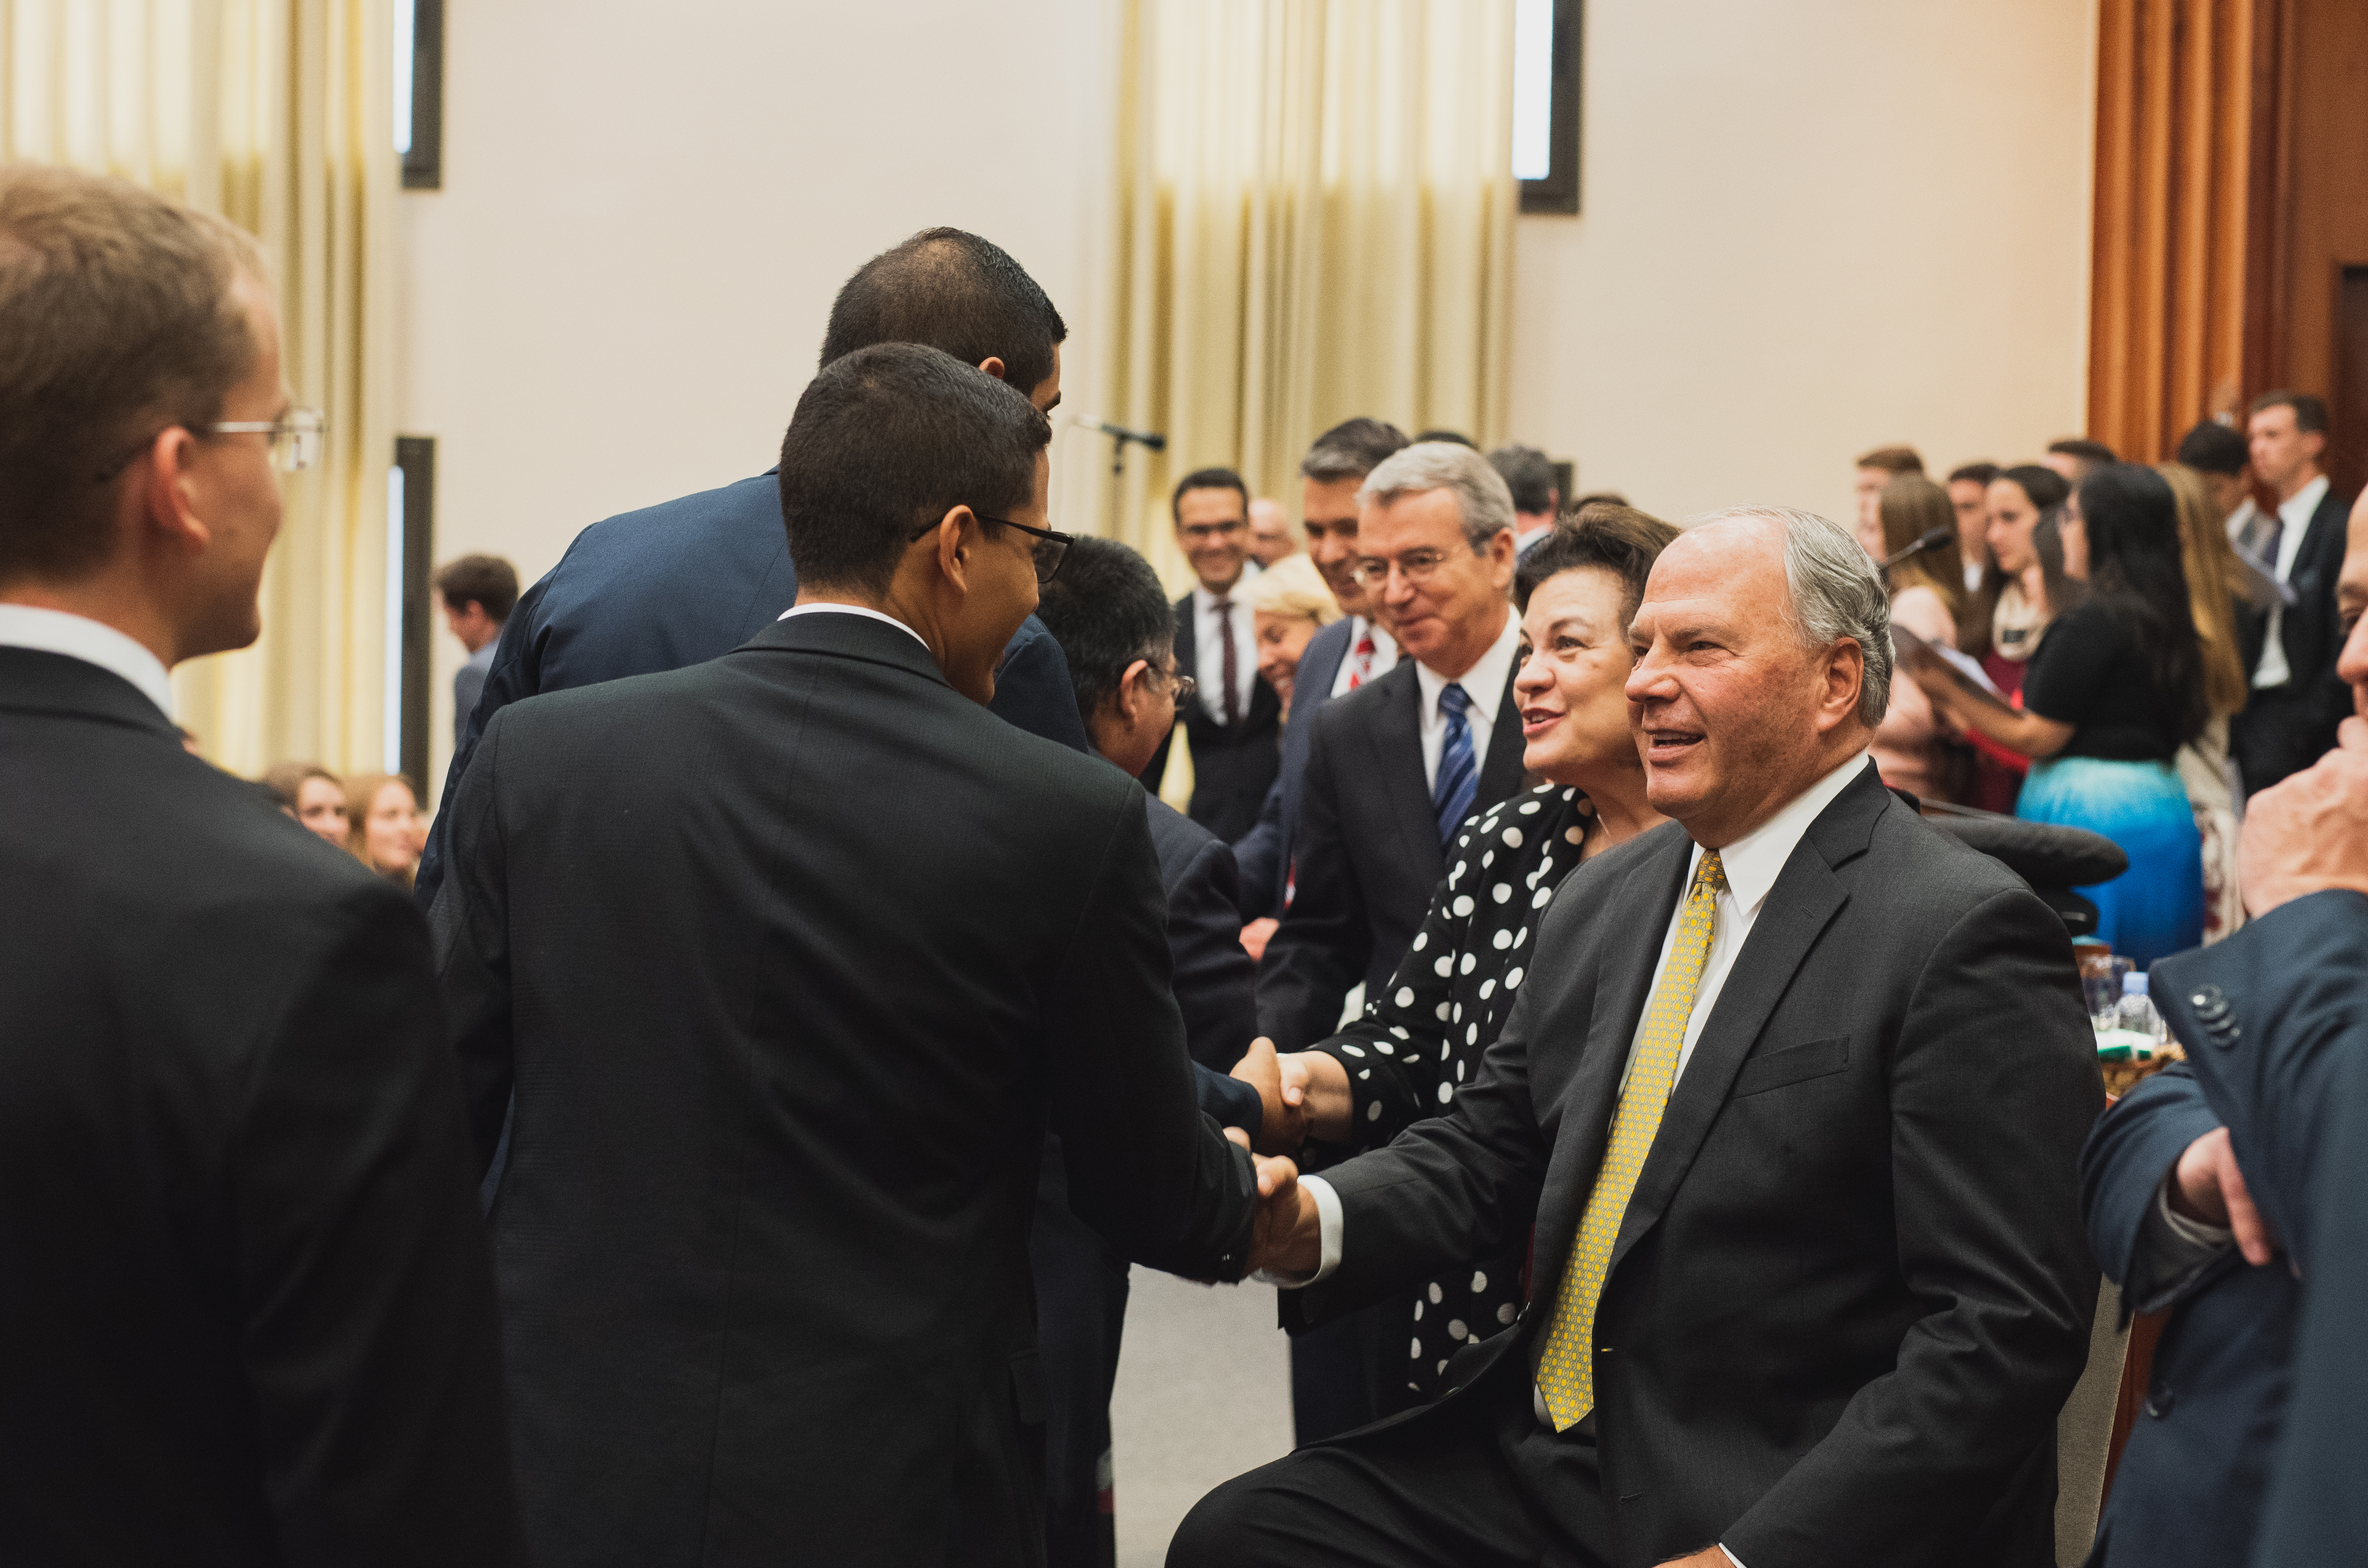 Elder Ronald A. Rasband of the Quorum of the Twelve Apostles is joined by his wife, Sister Melanie Rasband, and Elder Carlos A. Godoy of the Presidency of the Seventy in greeting missionaries. The Rasbands met with missionaries and mission leaders in three countries during the late August and early September 2018 trip to the South America South Area.